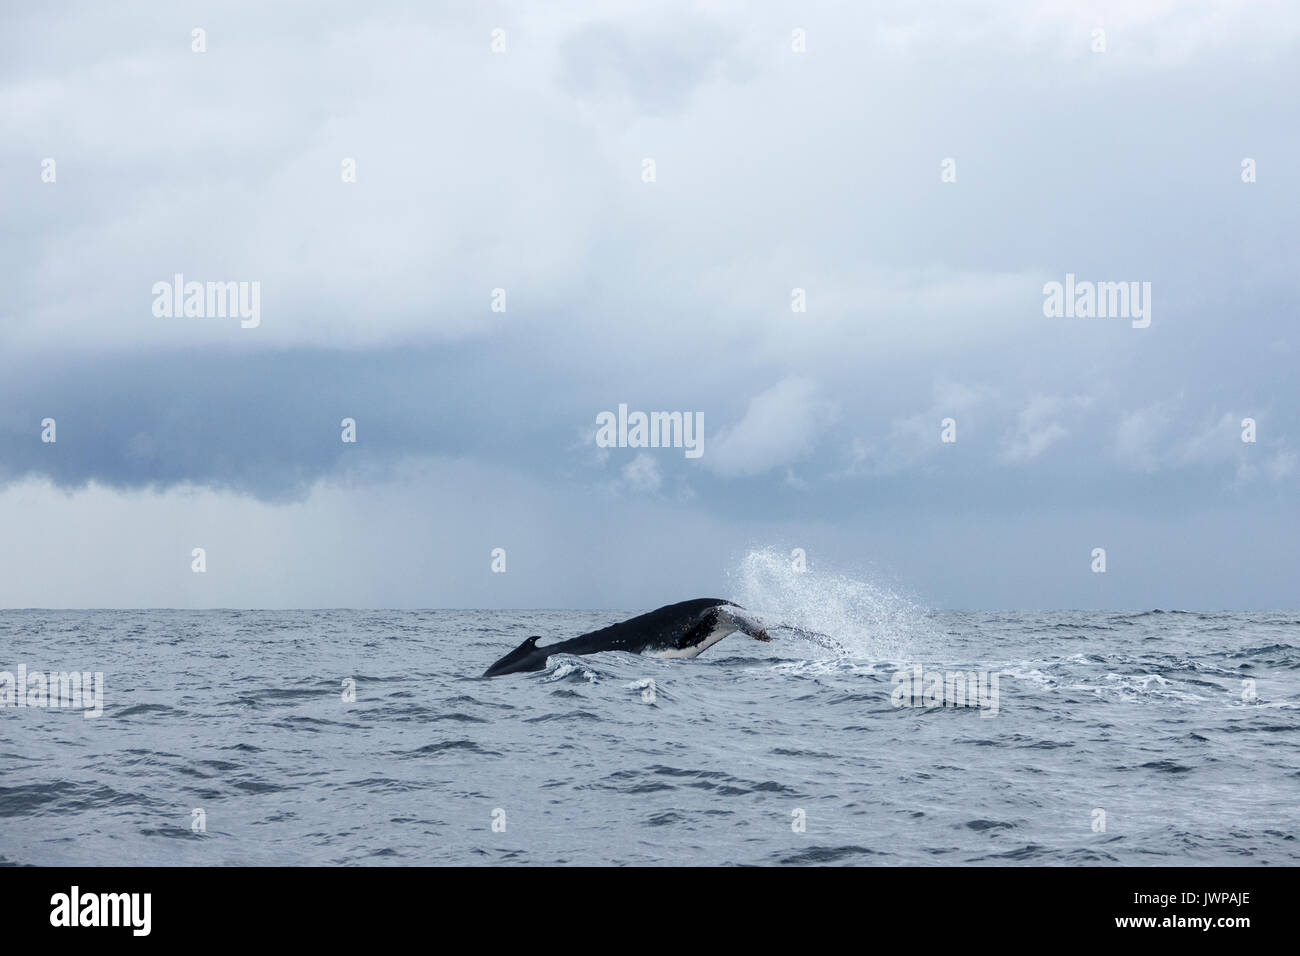 Diving Humpback whale on winter migratory route off Sydney Heads Australia - Stock Image